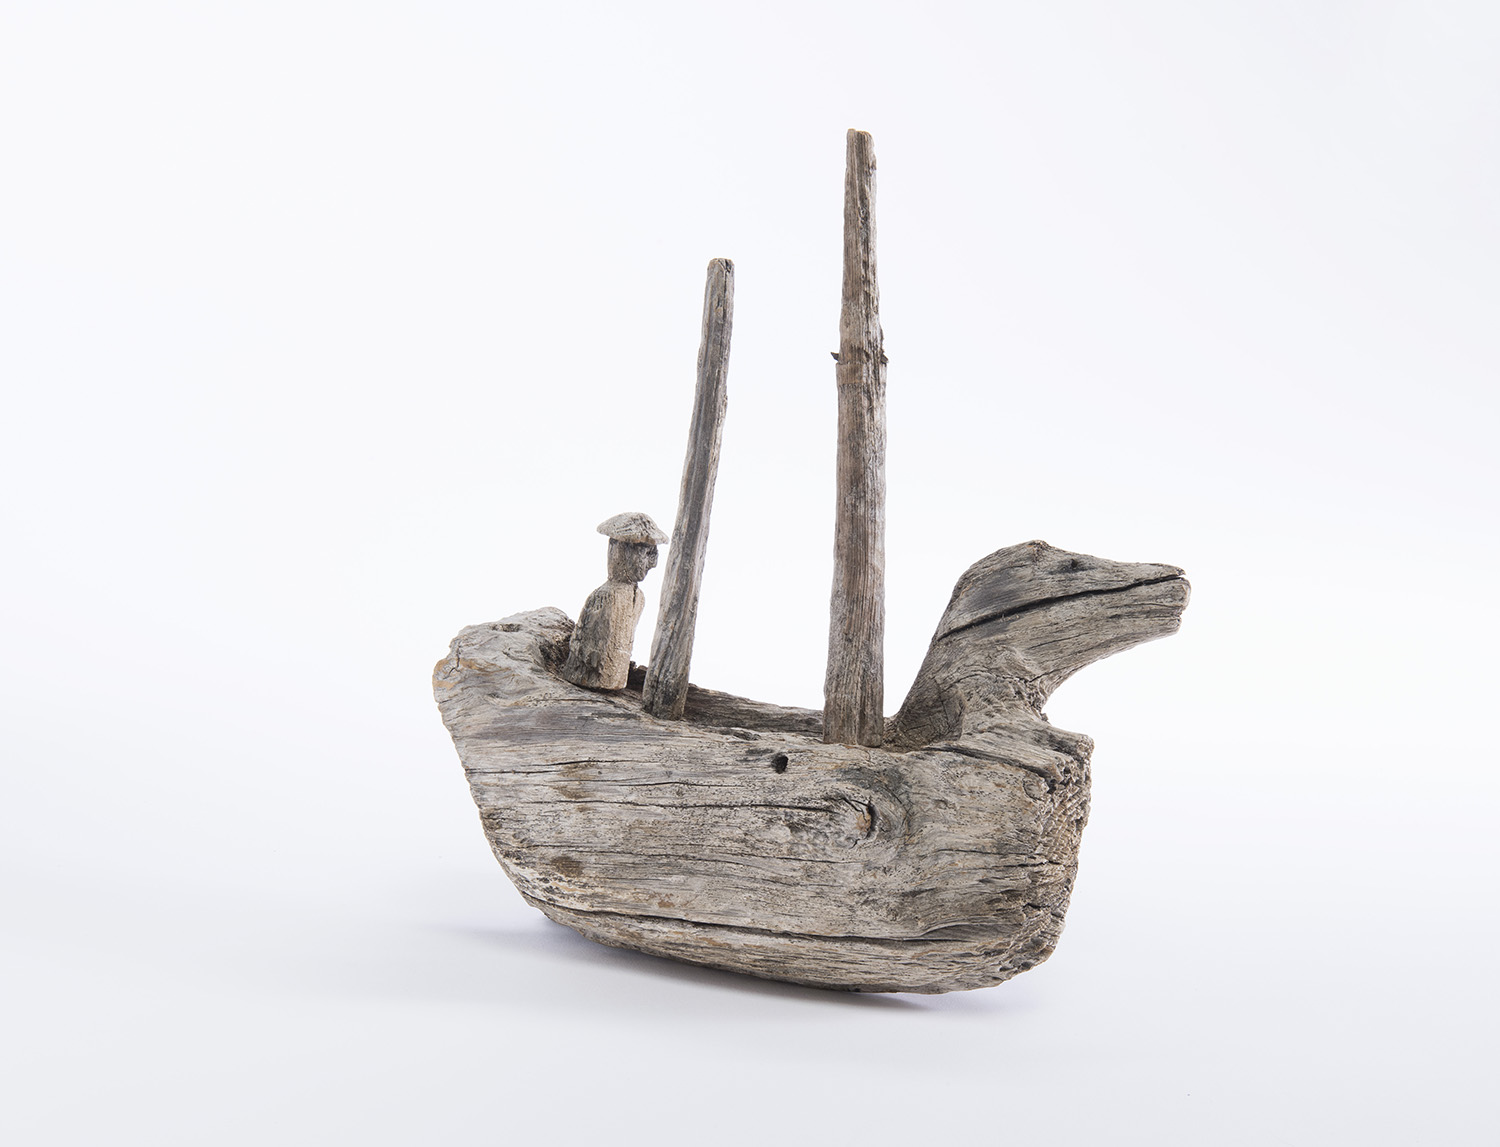 Wooden Carving of Boat